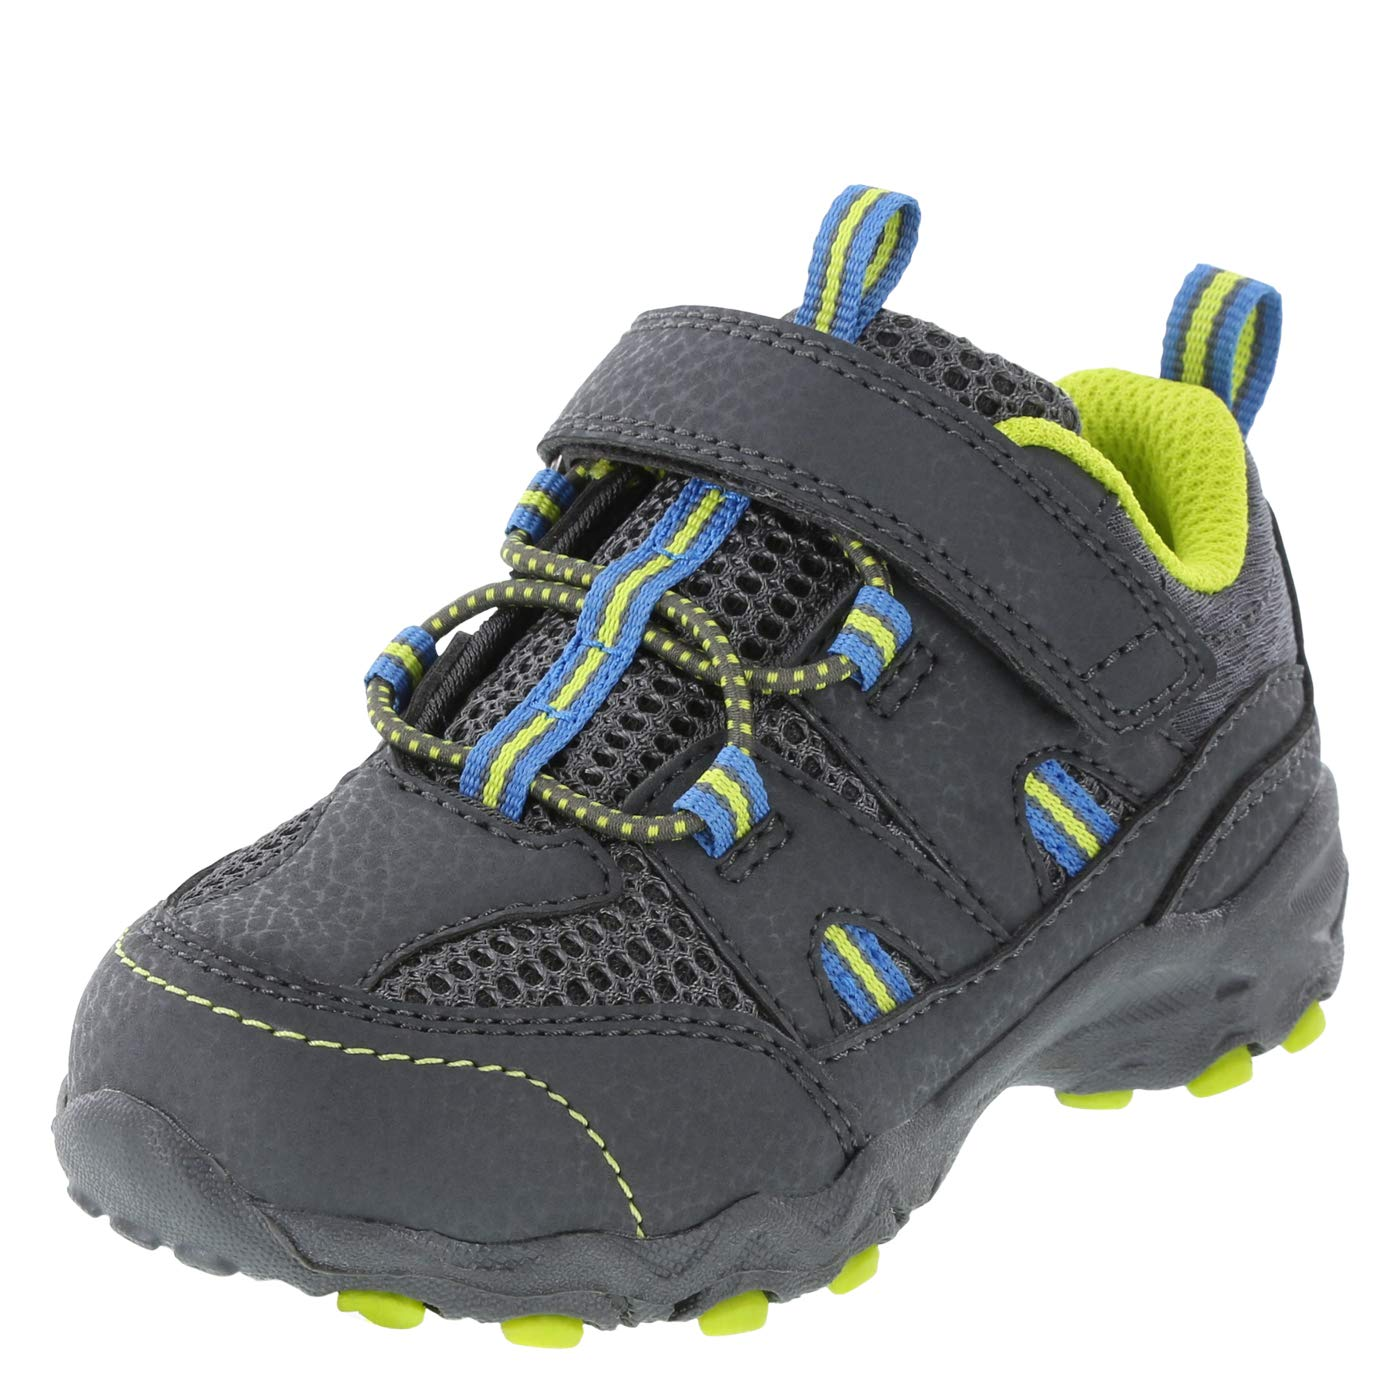 Rugged Outback Boys' Toddler Hayden Low-Top Hiker 079900-Parent